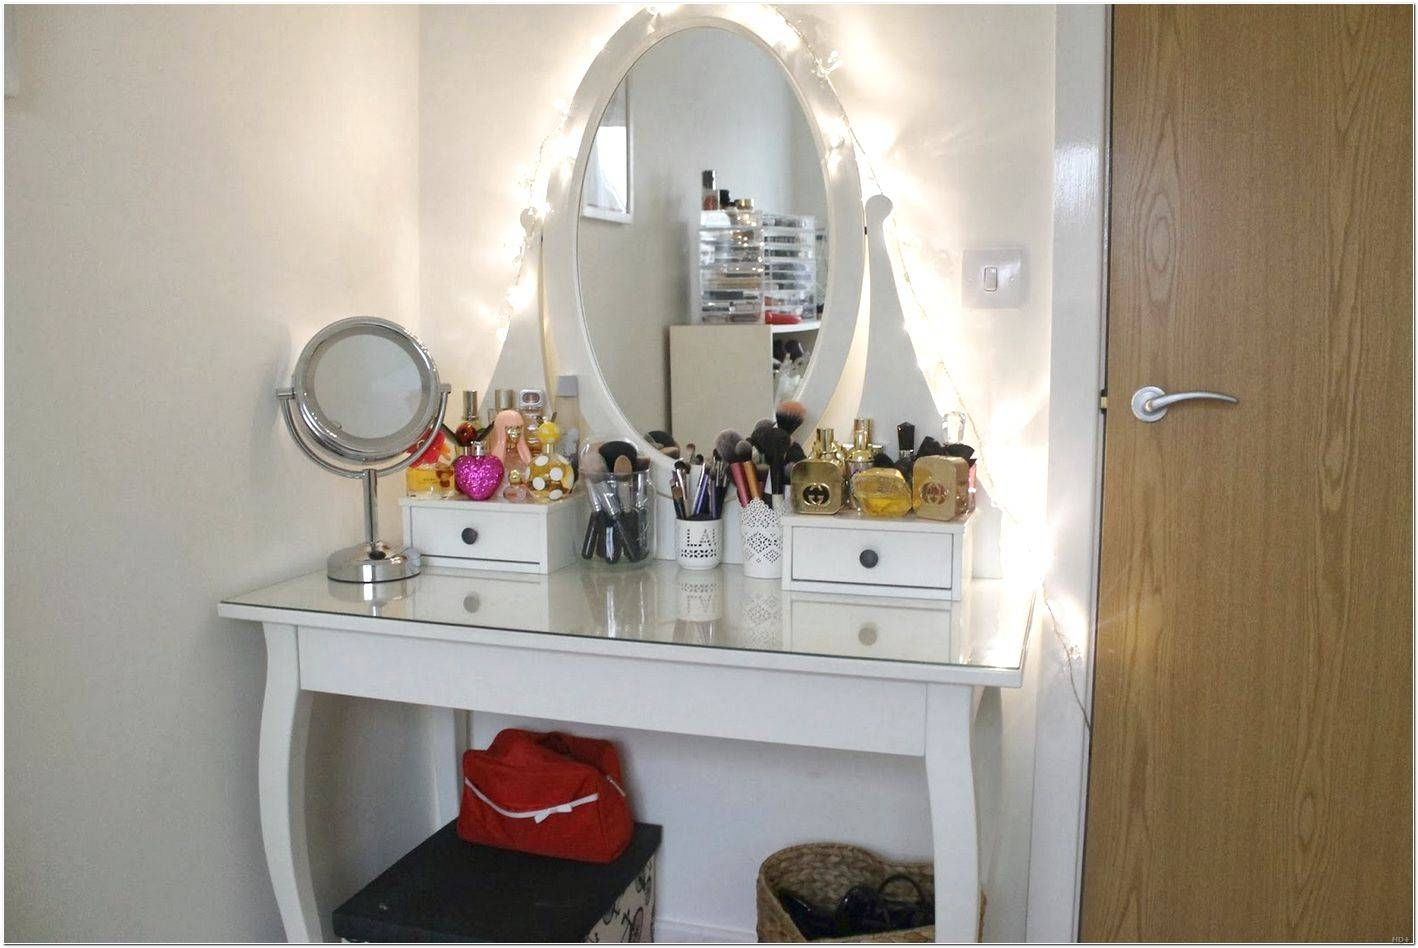 Contemporary Dressing Table Mirrors Design Ideas – Interior Design In Contemporary Dressing Table Mirrors (View 11 of 25)